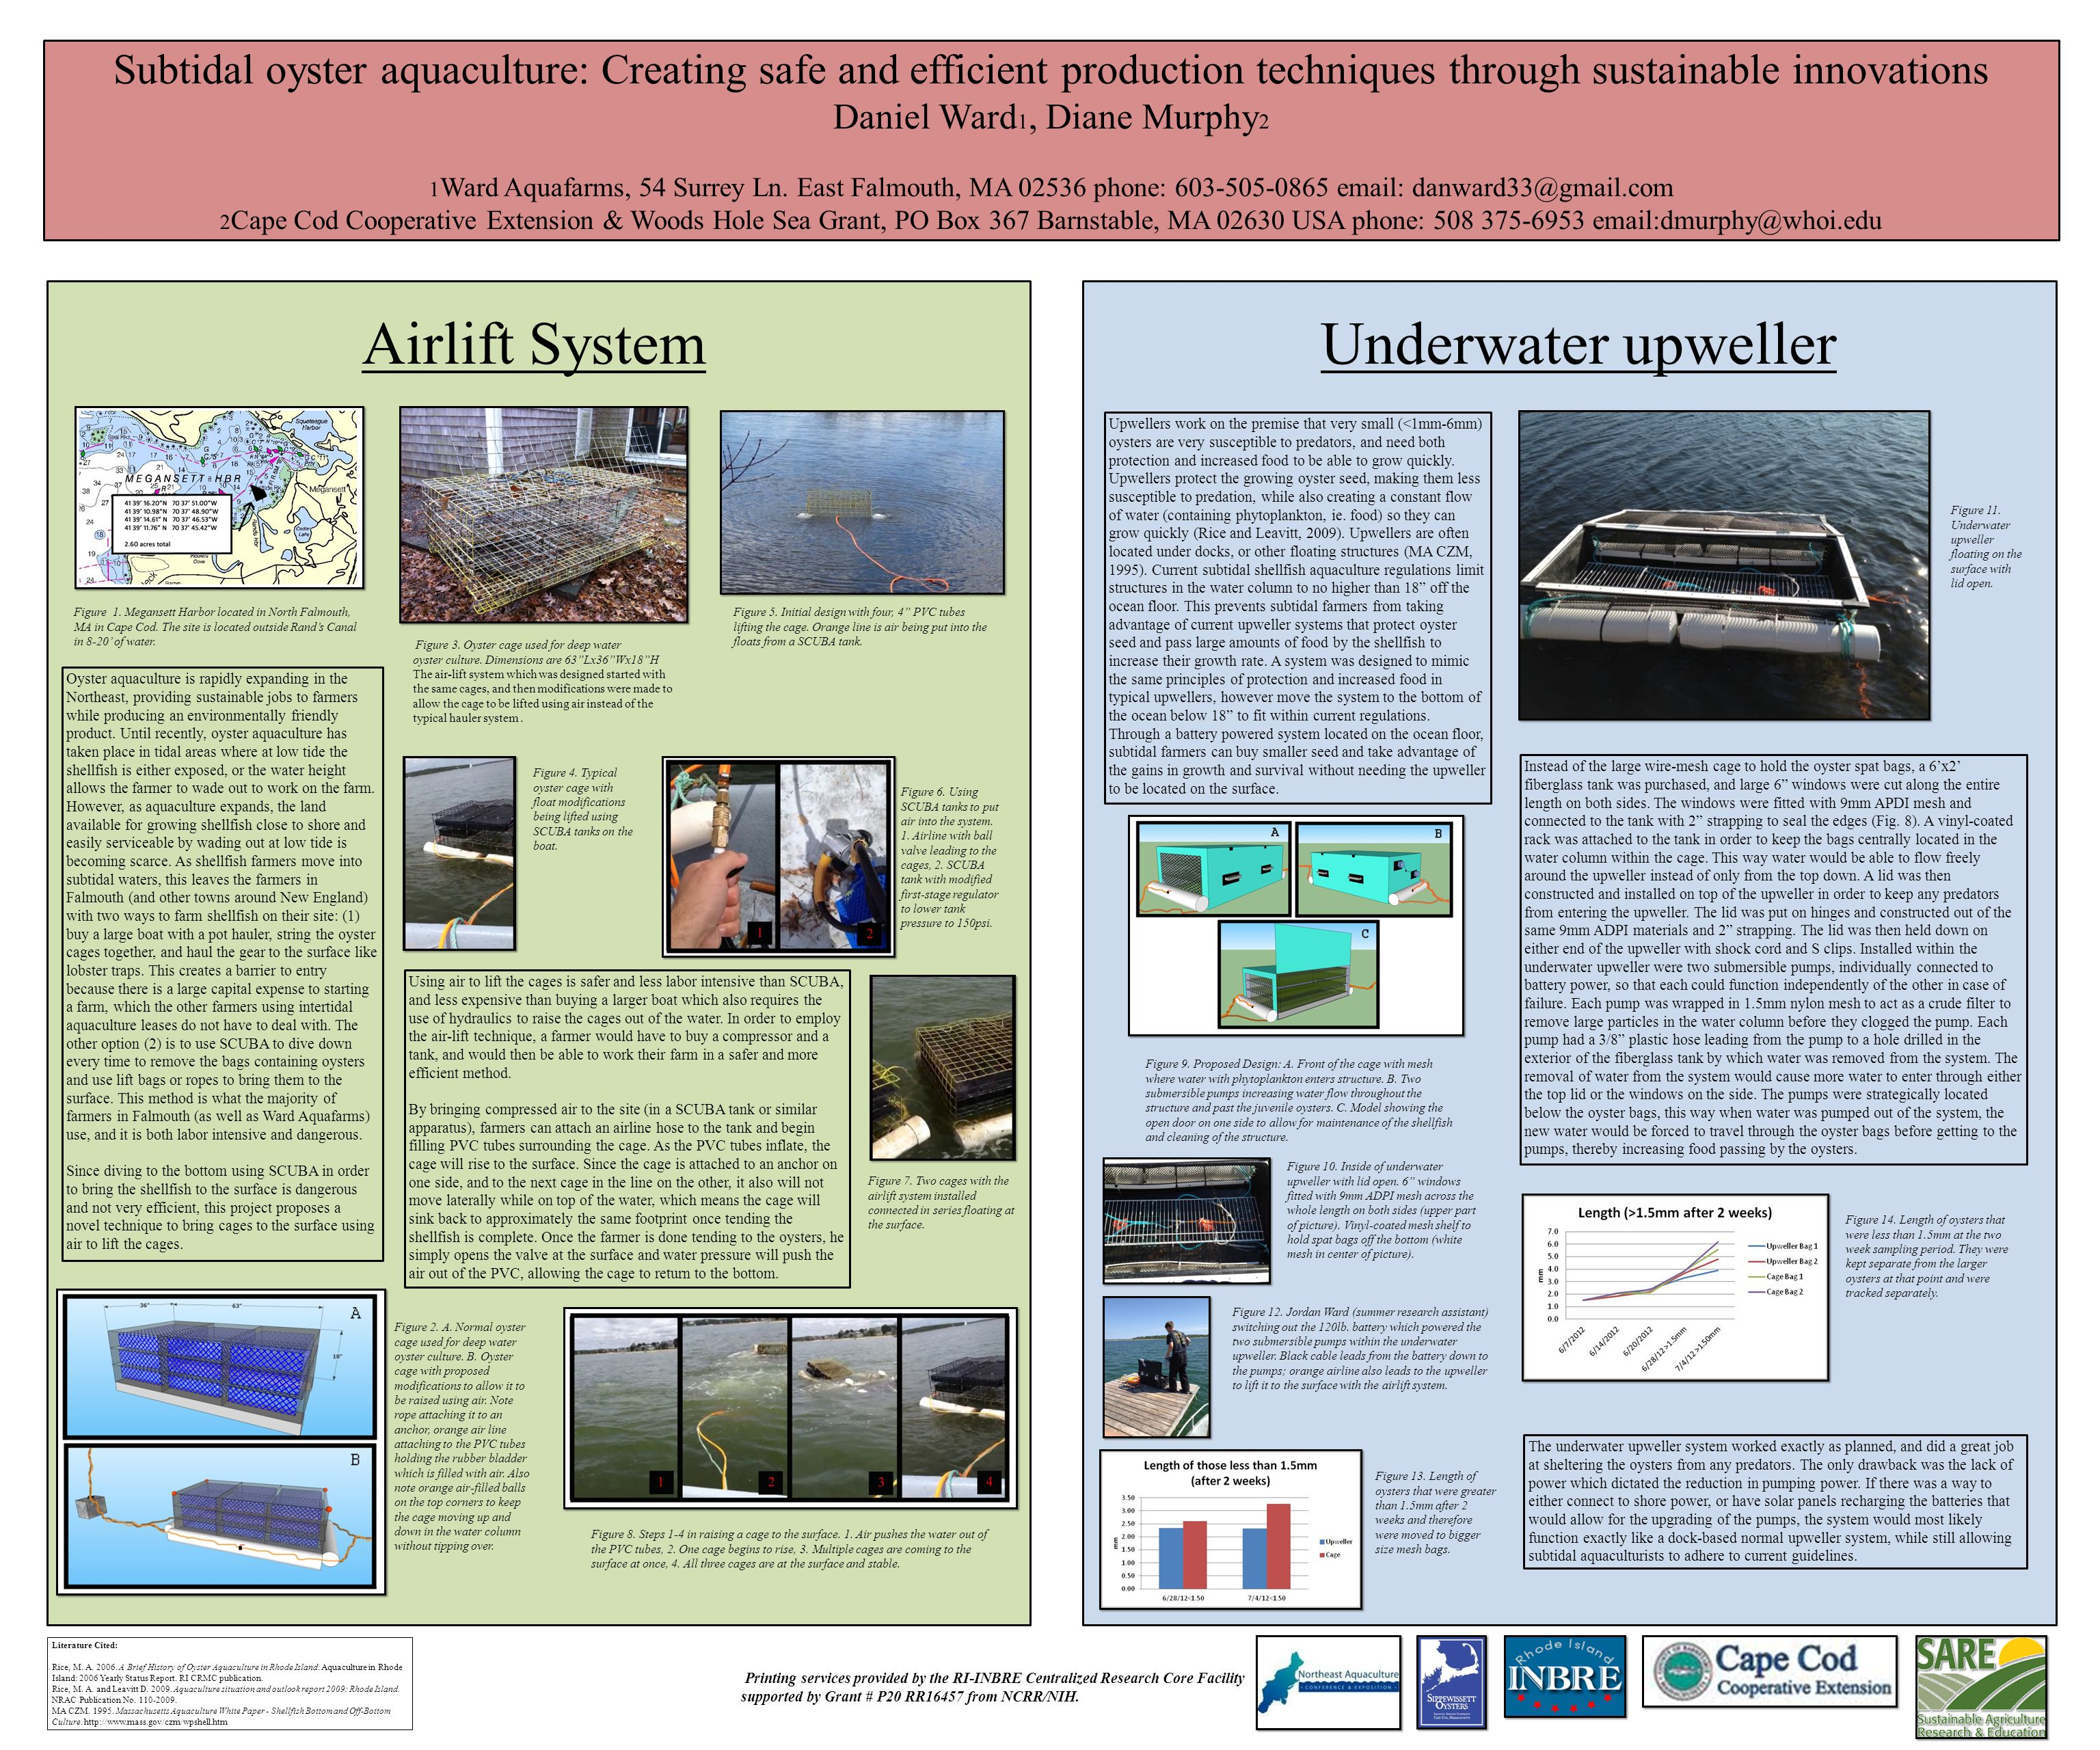 Subtidal oyster aquaculture: Creating safe and efficient production techniques through sustainable innovations Daniel Ward 1, Diane Murphy 2 1 Ward Aq